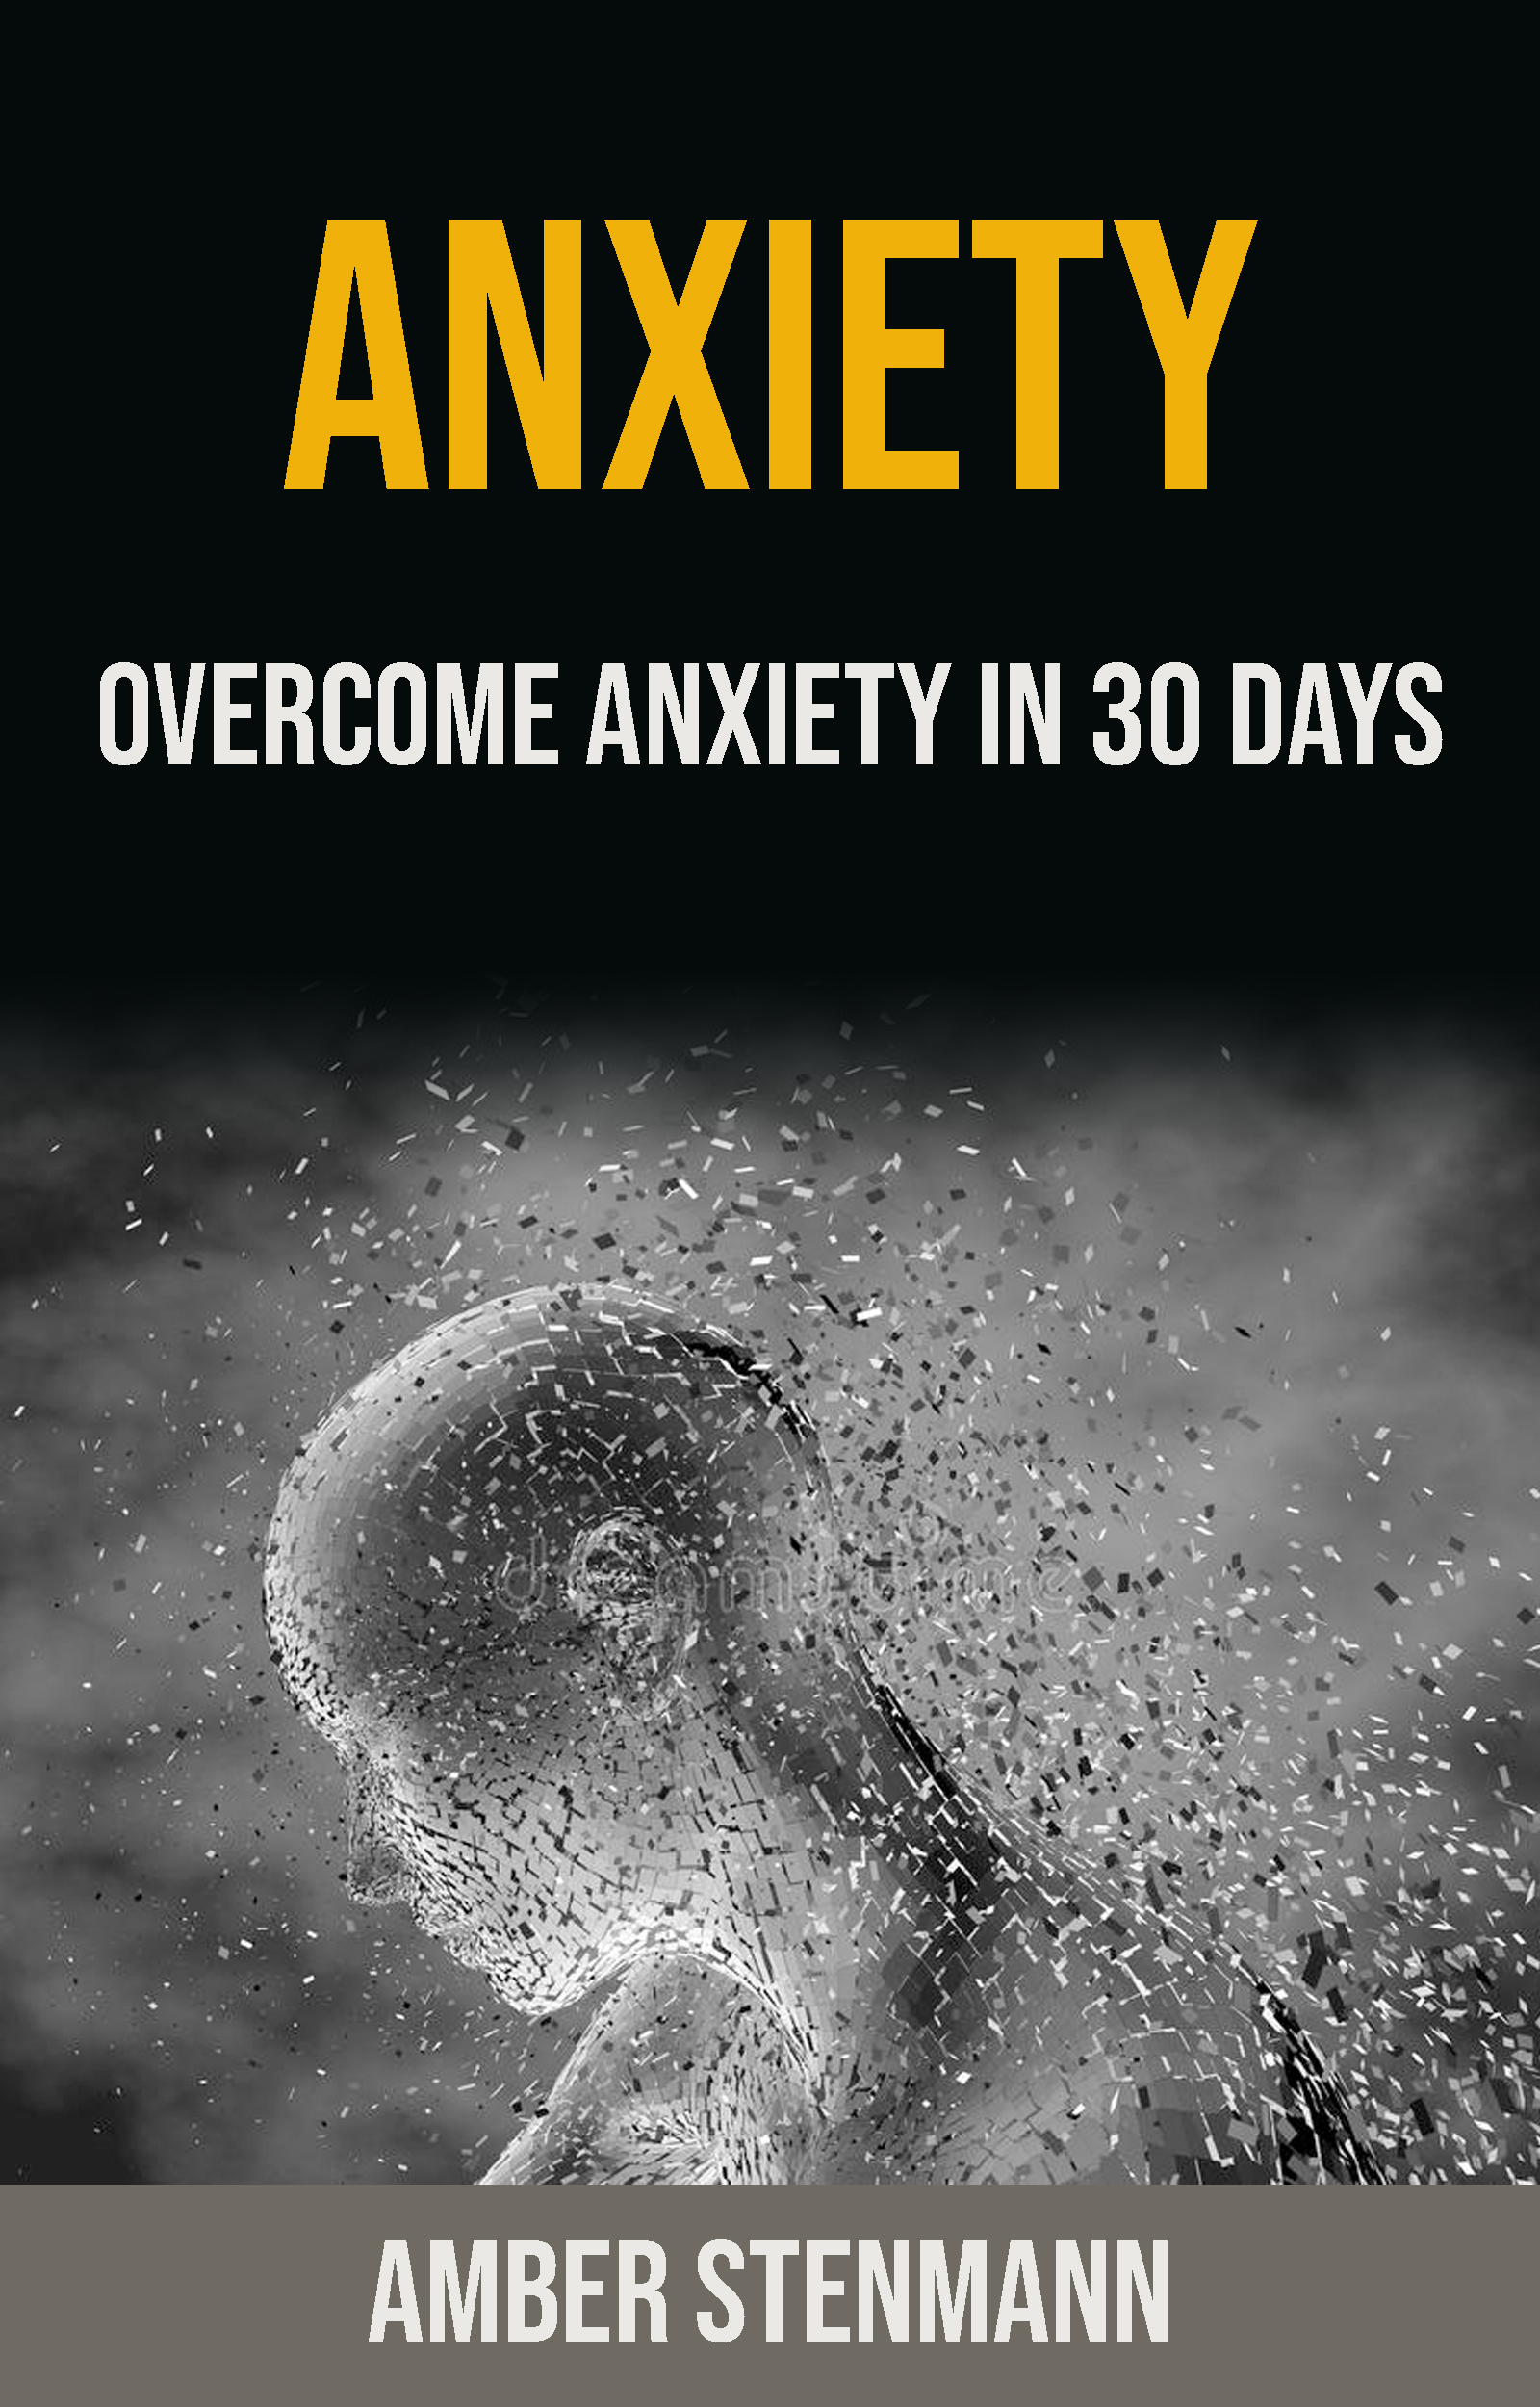 Anxiety: overcome anxiety in 30 days